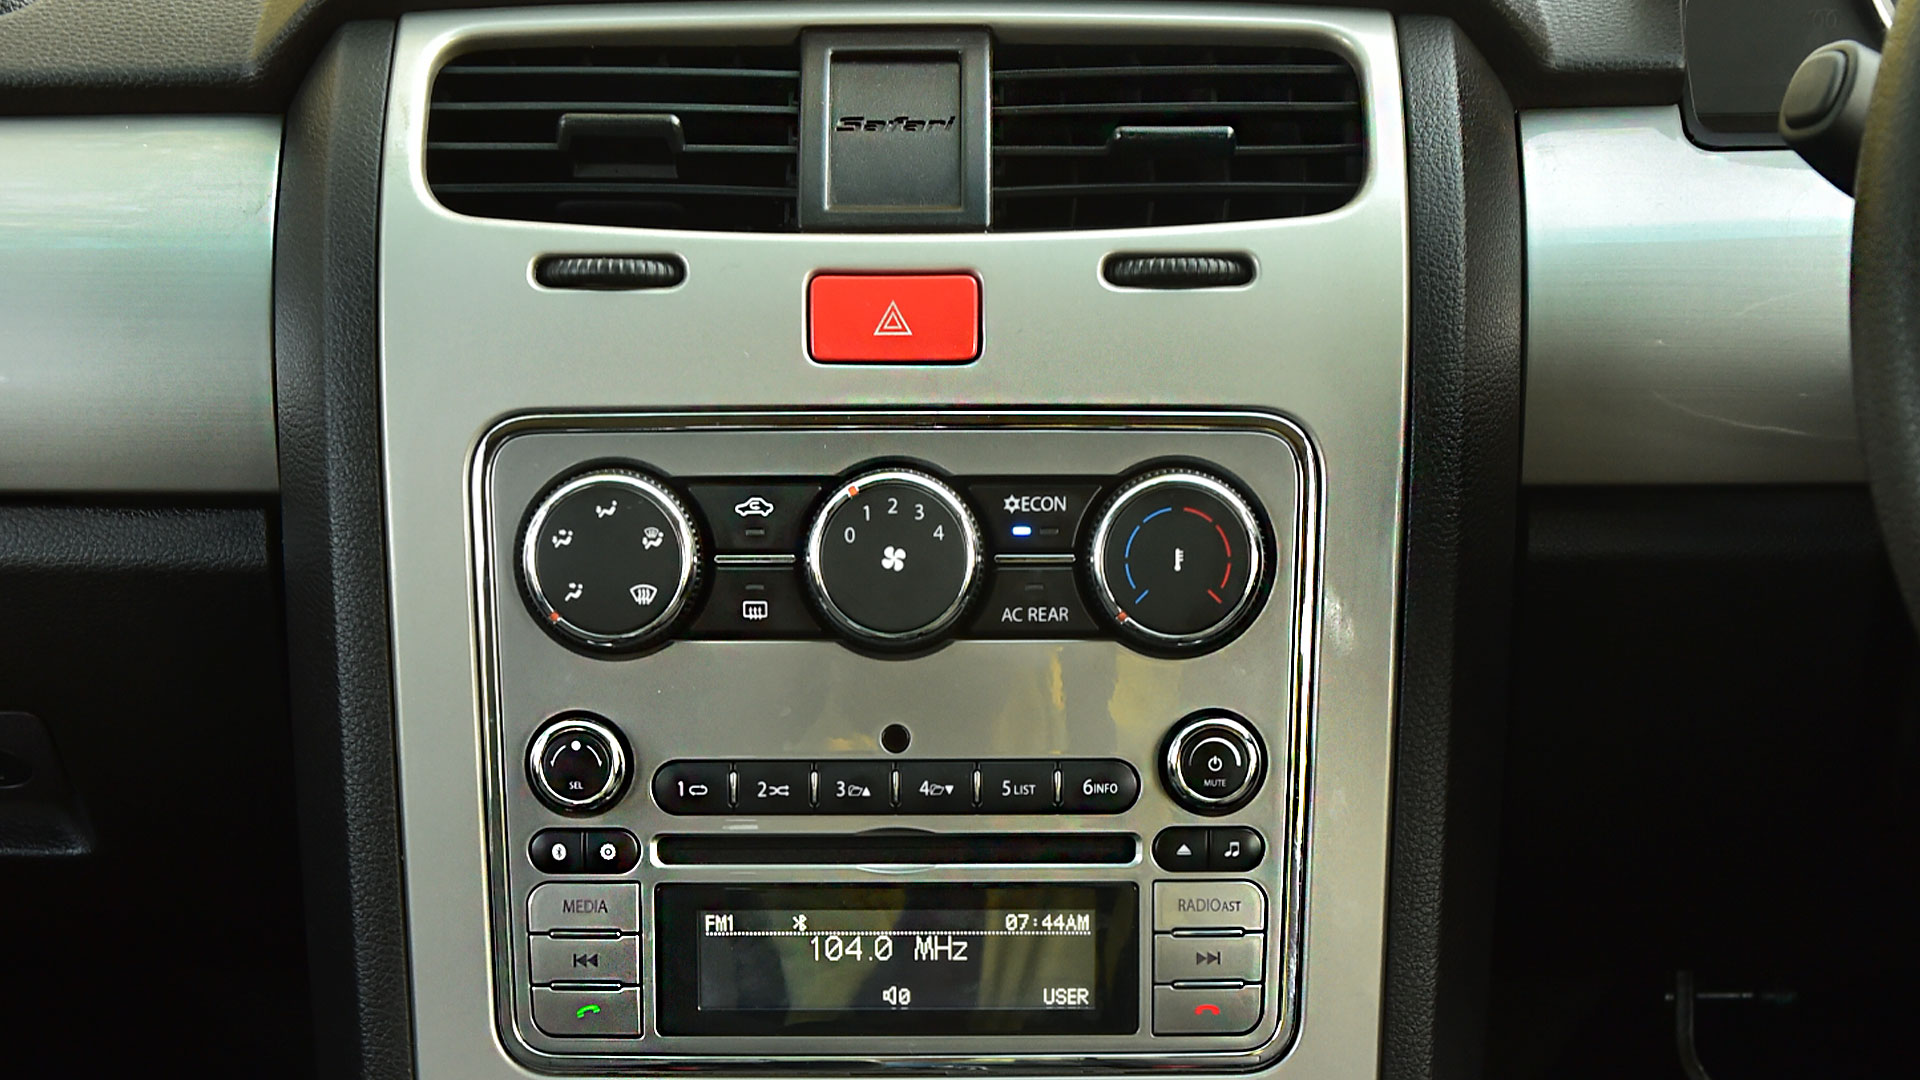 Tata Safari Storme 2016 VX BS4 4x4 Interior